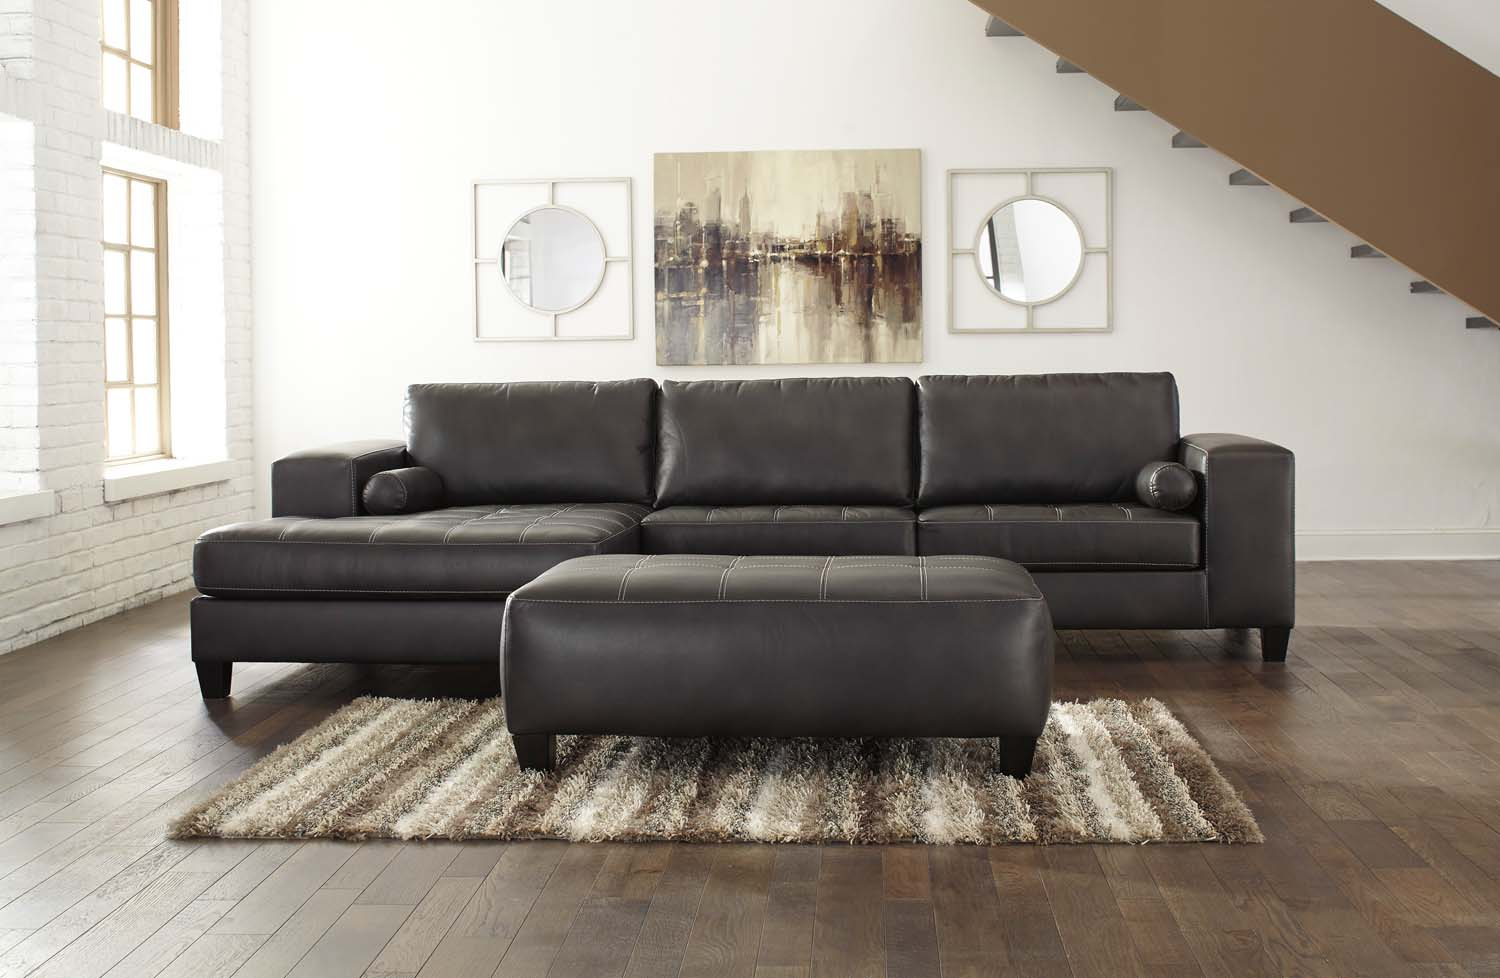 Exceptional LAF Corner Chaise/ RAF Sofa 2 Piece Sectional